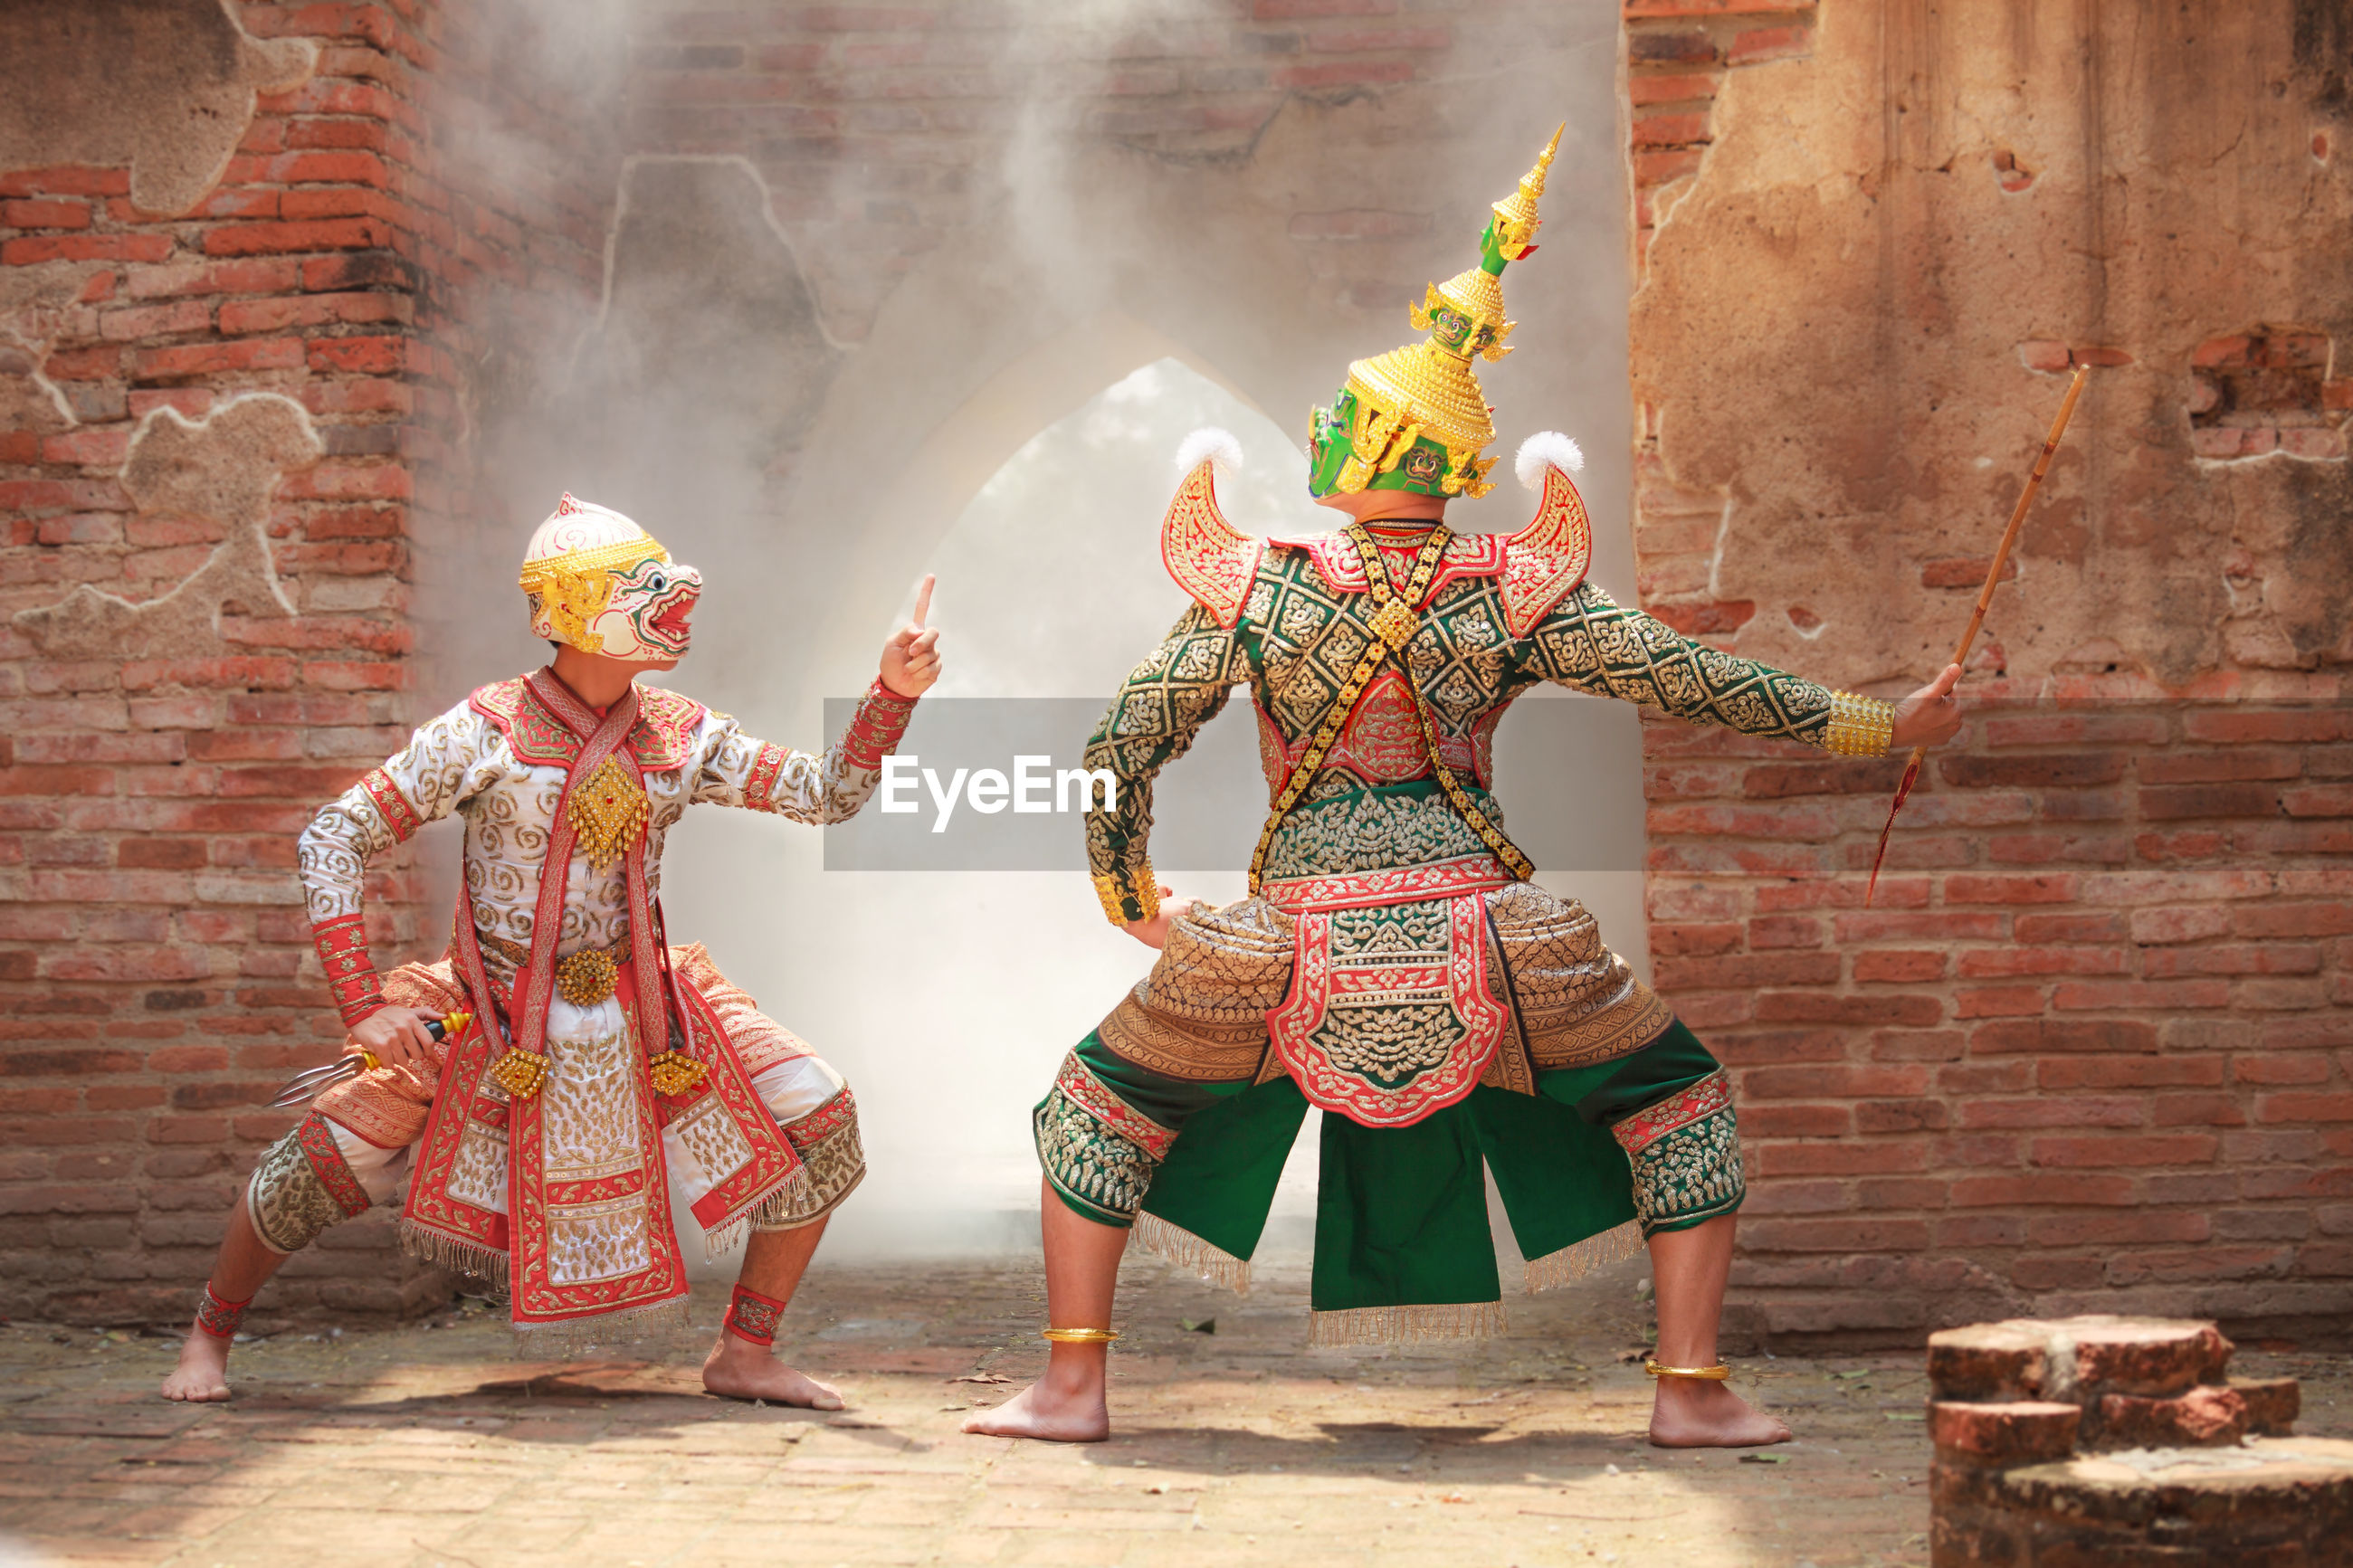 Male performers wearing traditional clothing while acting on stage